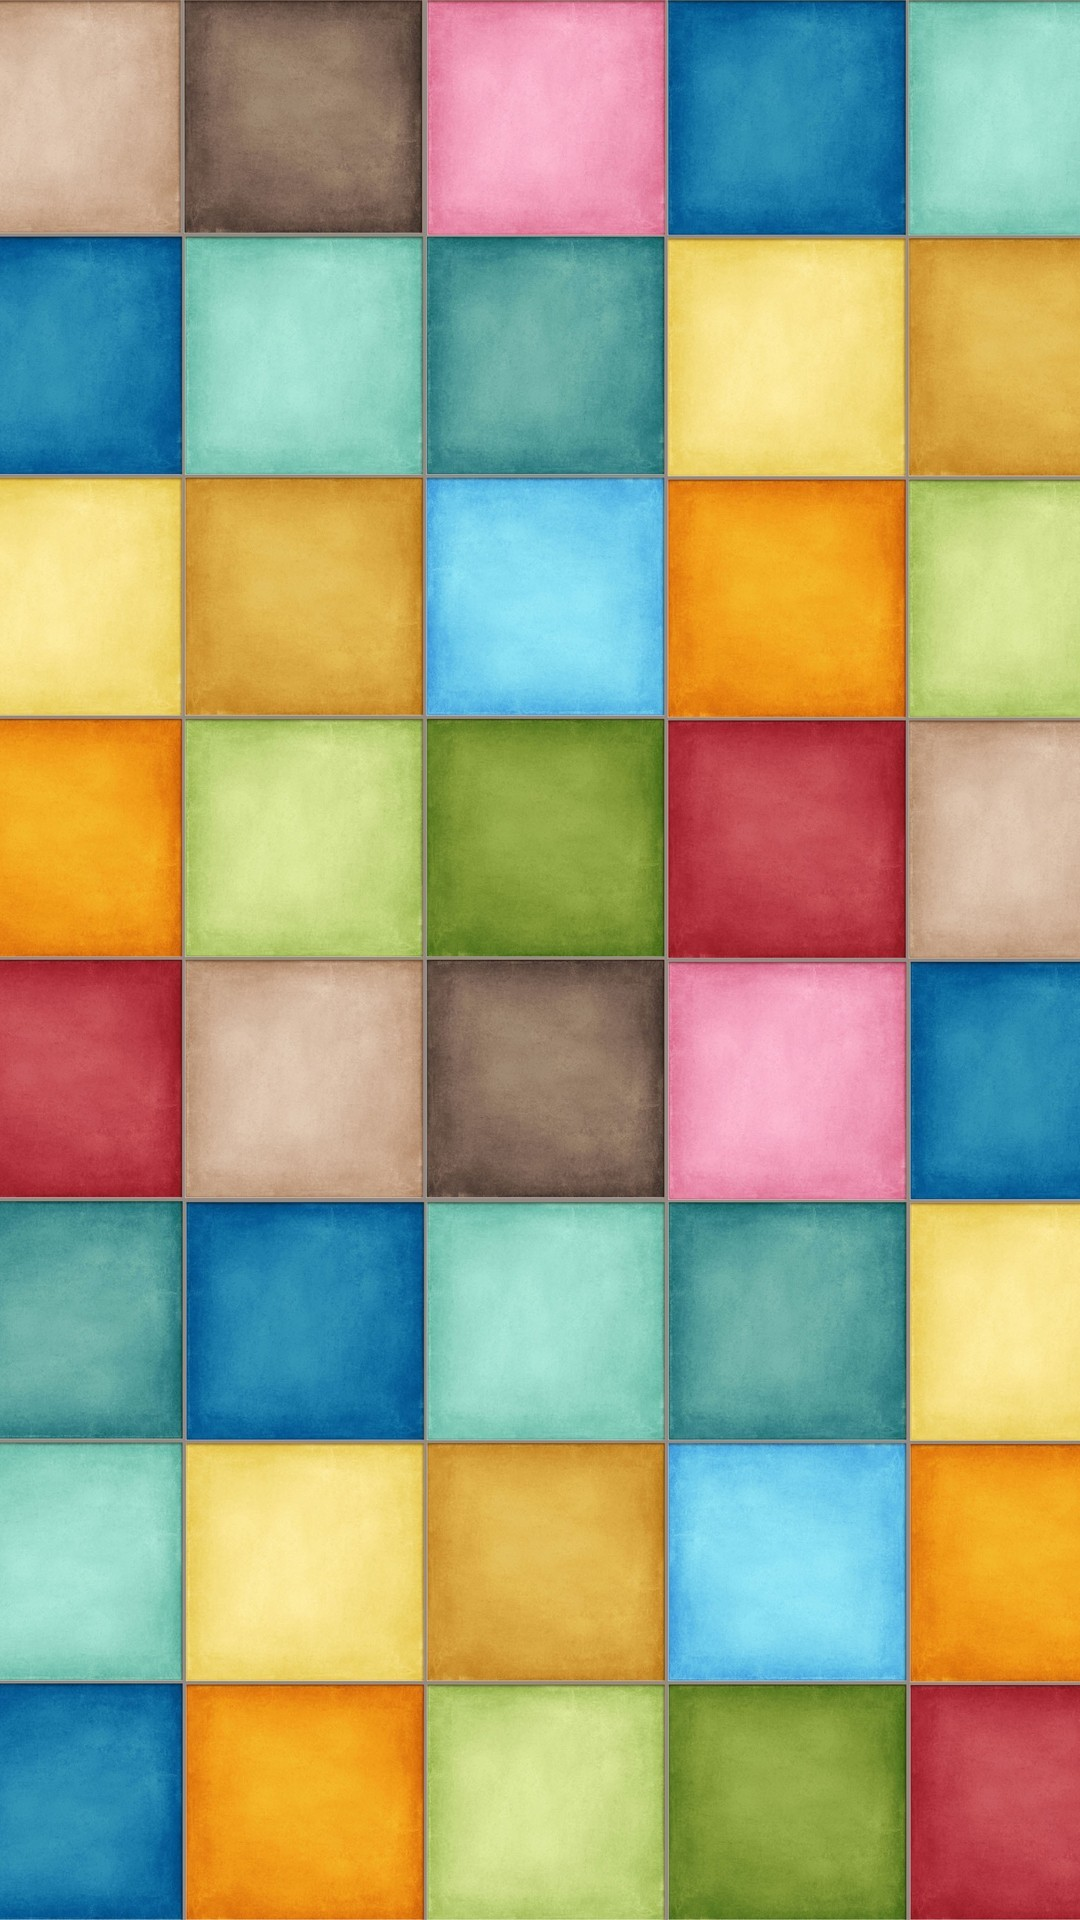 pastel squares iphone hd wallpaper | iphone wallpaper